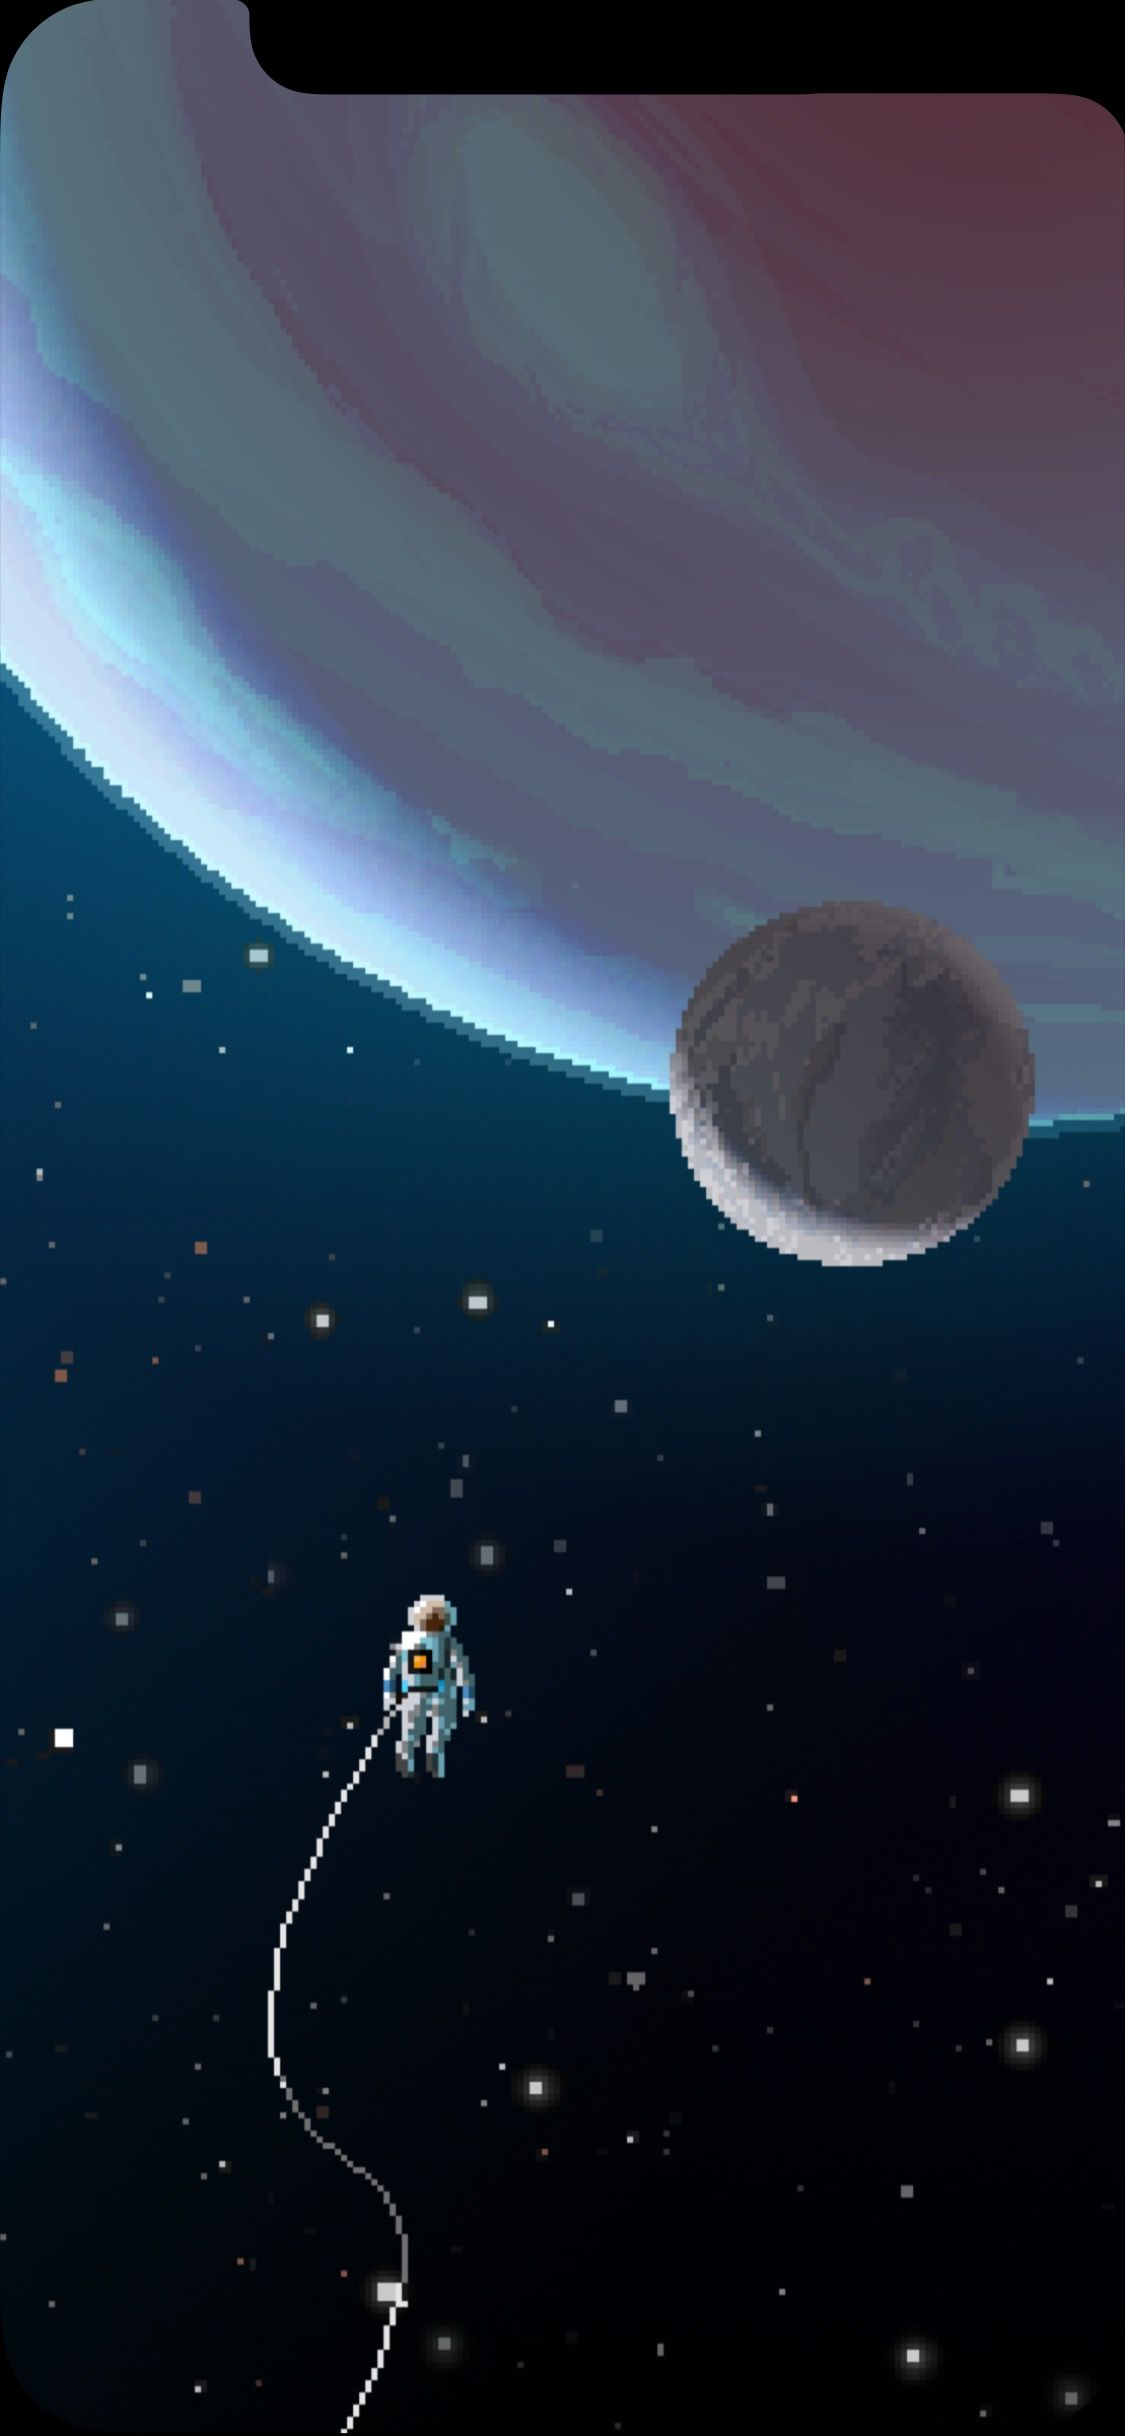 Altered For Iphone X Wallpaper Artist On Website Tab Pixel Art Art Wallpaper Wallpaper Space